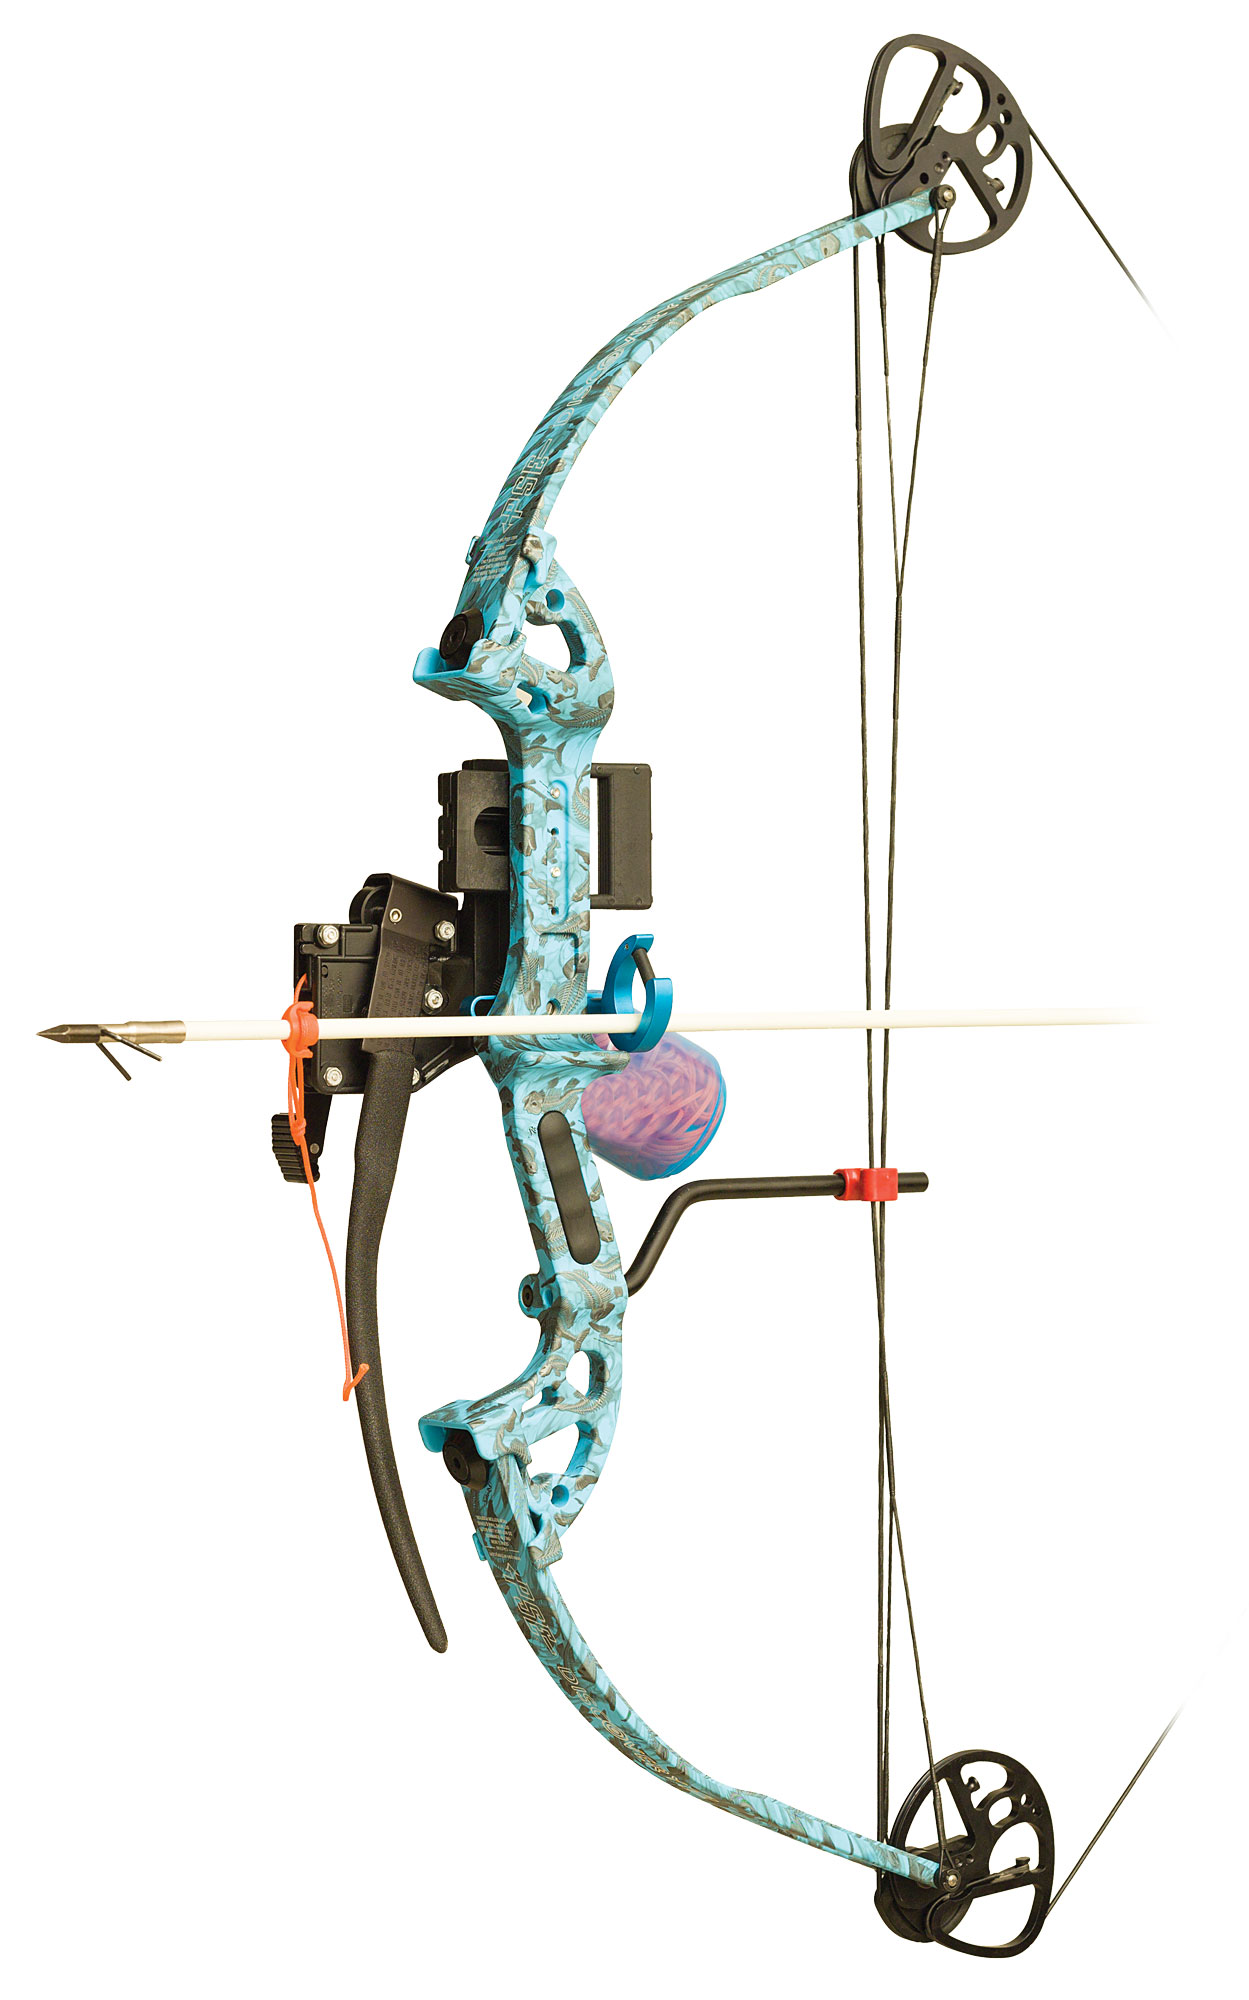 Pse discovery bowfishing bow pkg rh 40lb reaper h2o for Bow fishing bows